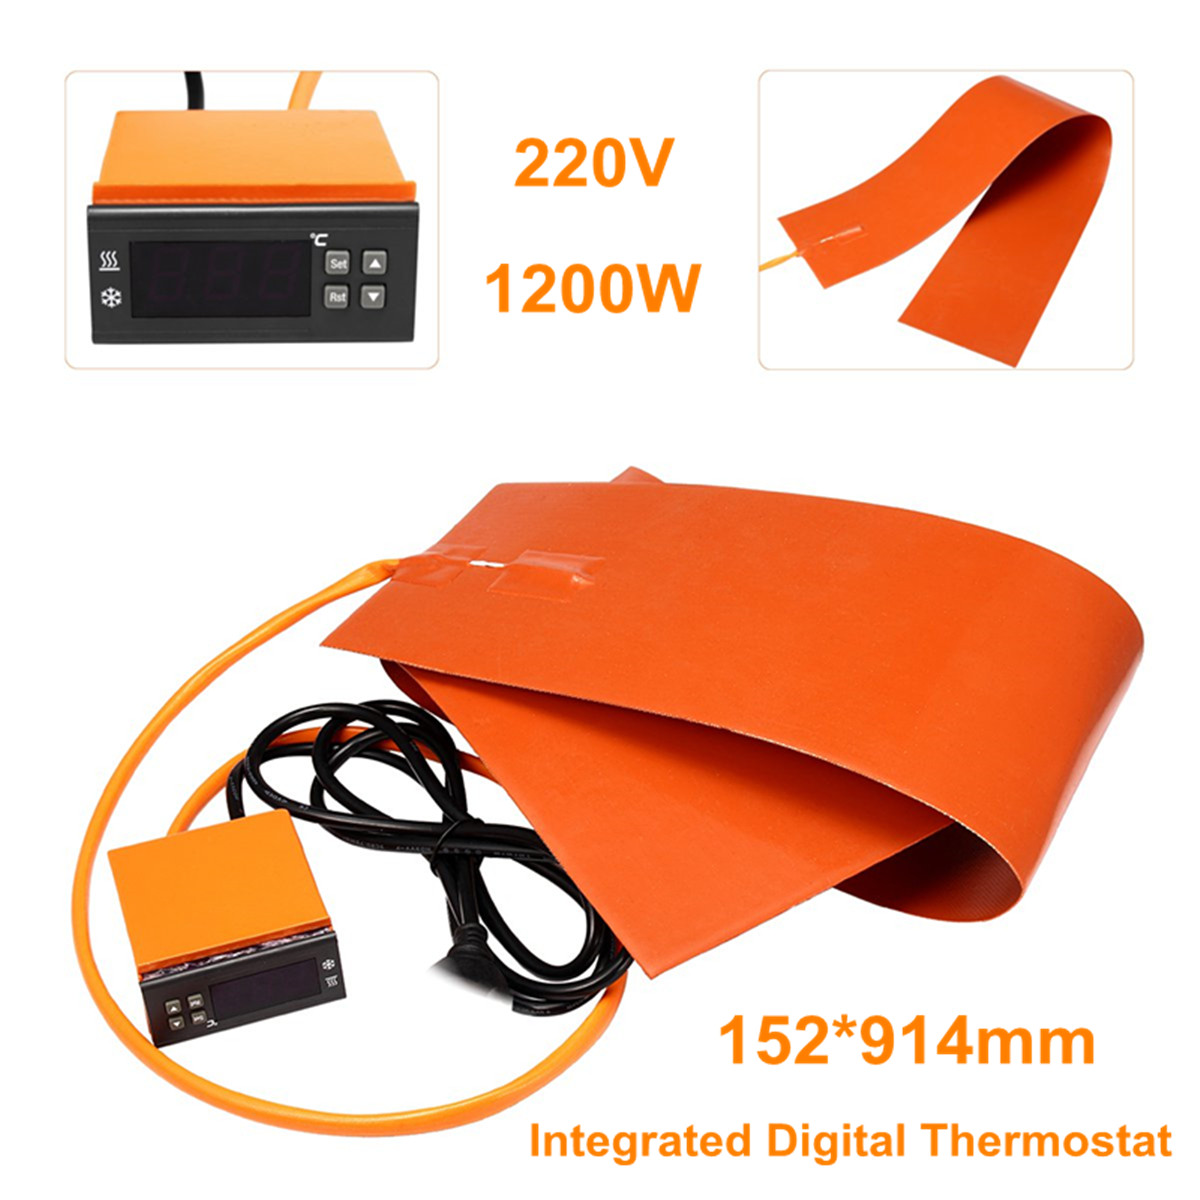 6x36'' 220V Guitar Side Bending Silicone Heat Blanket Integrated Digital Thermostat Controller Guitar Accessories 1200W